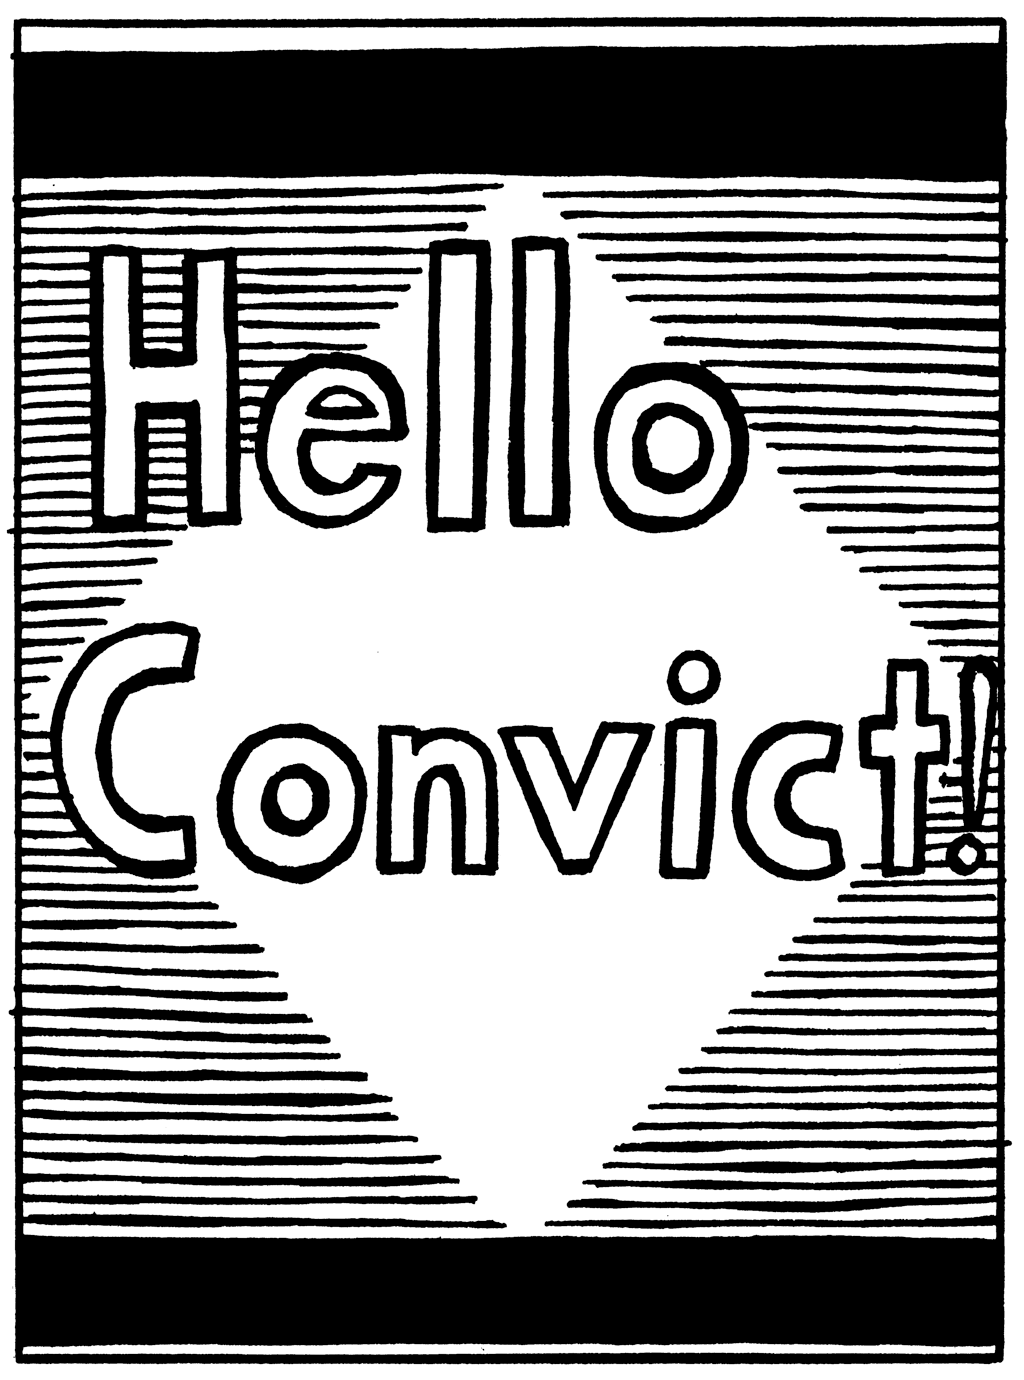 Hello Convict1.png